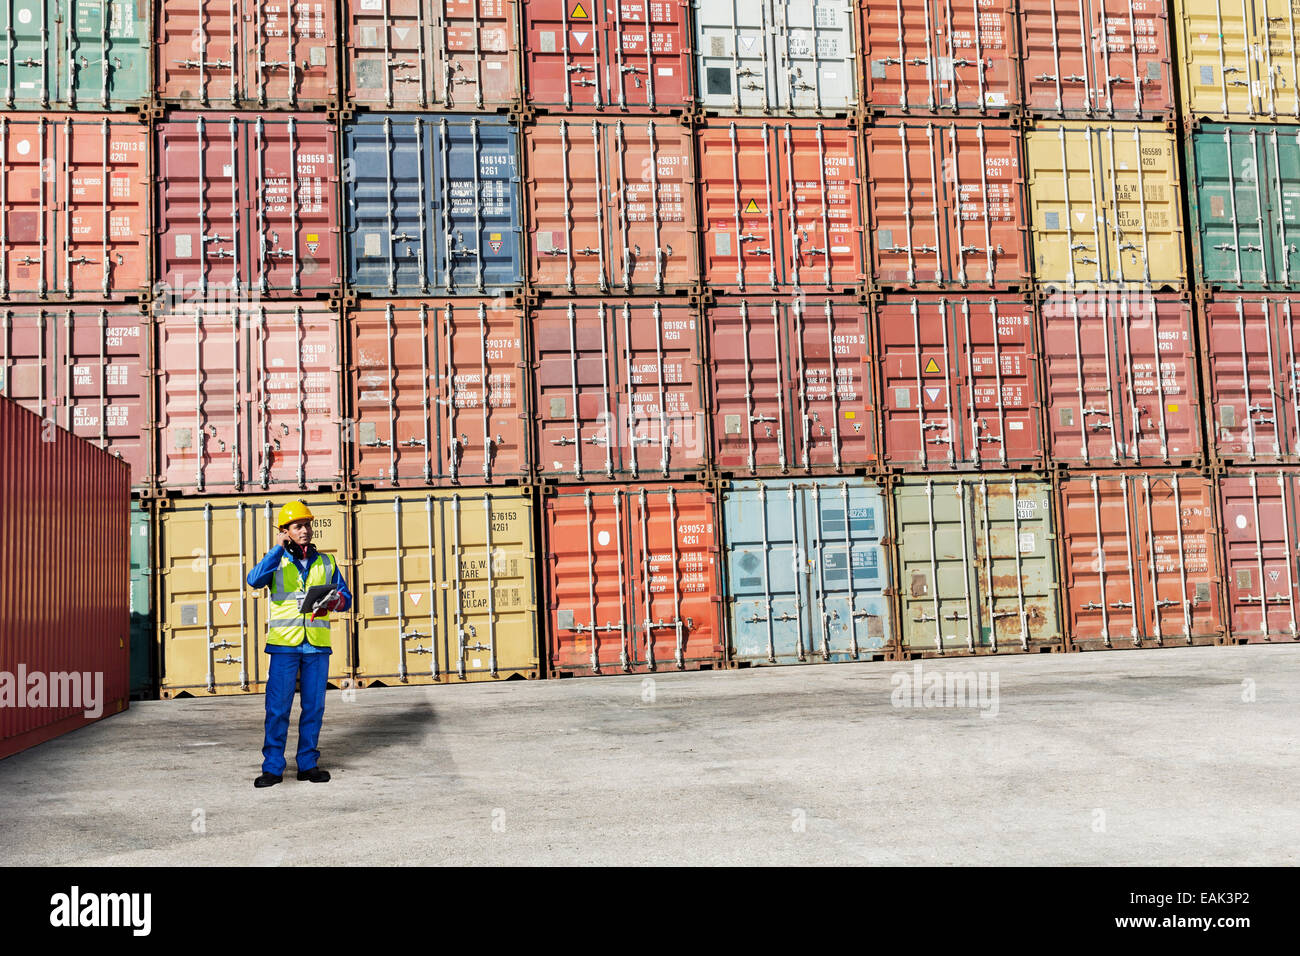 Worker standing near cargo containers - Stock Image